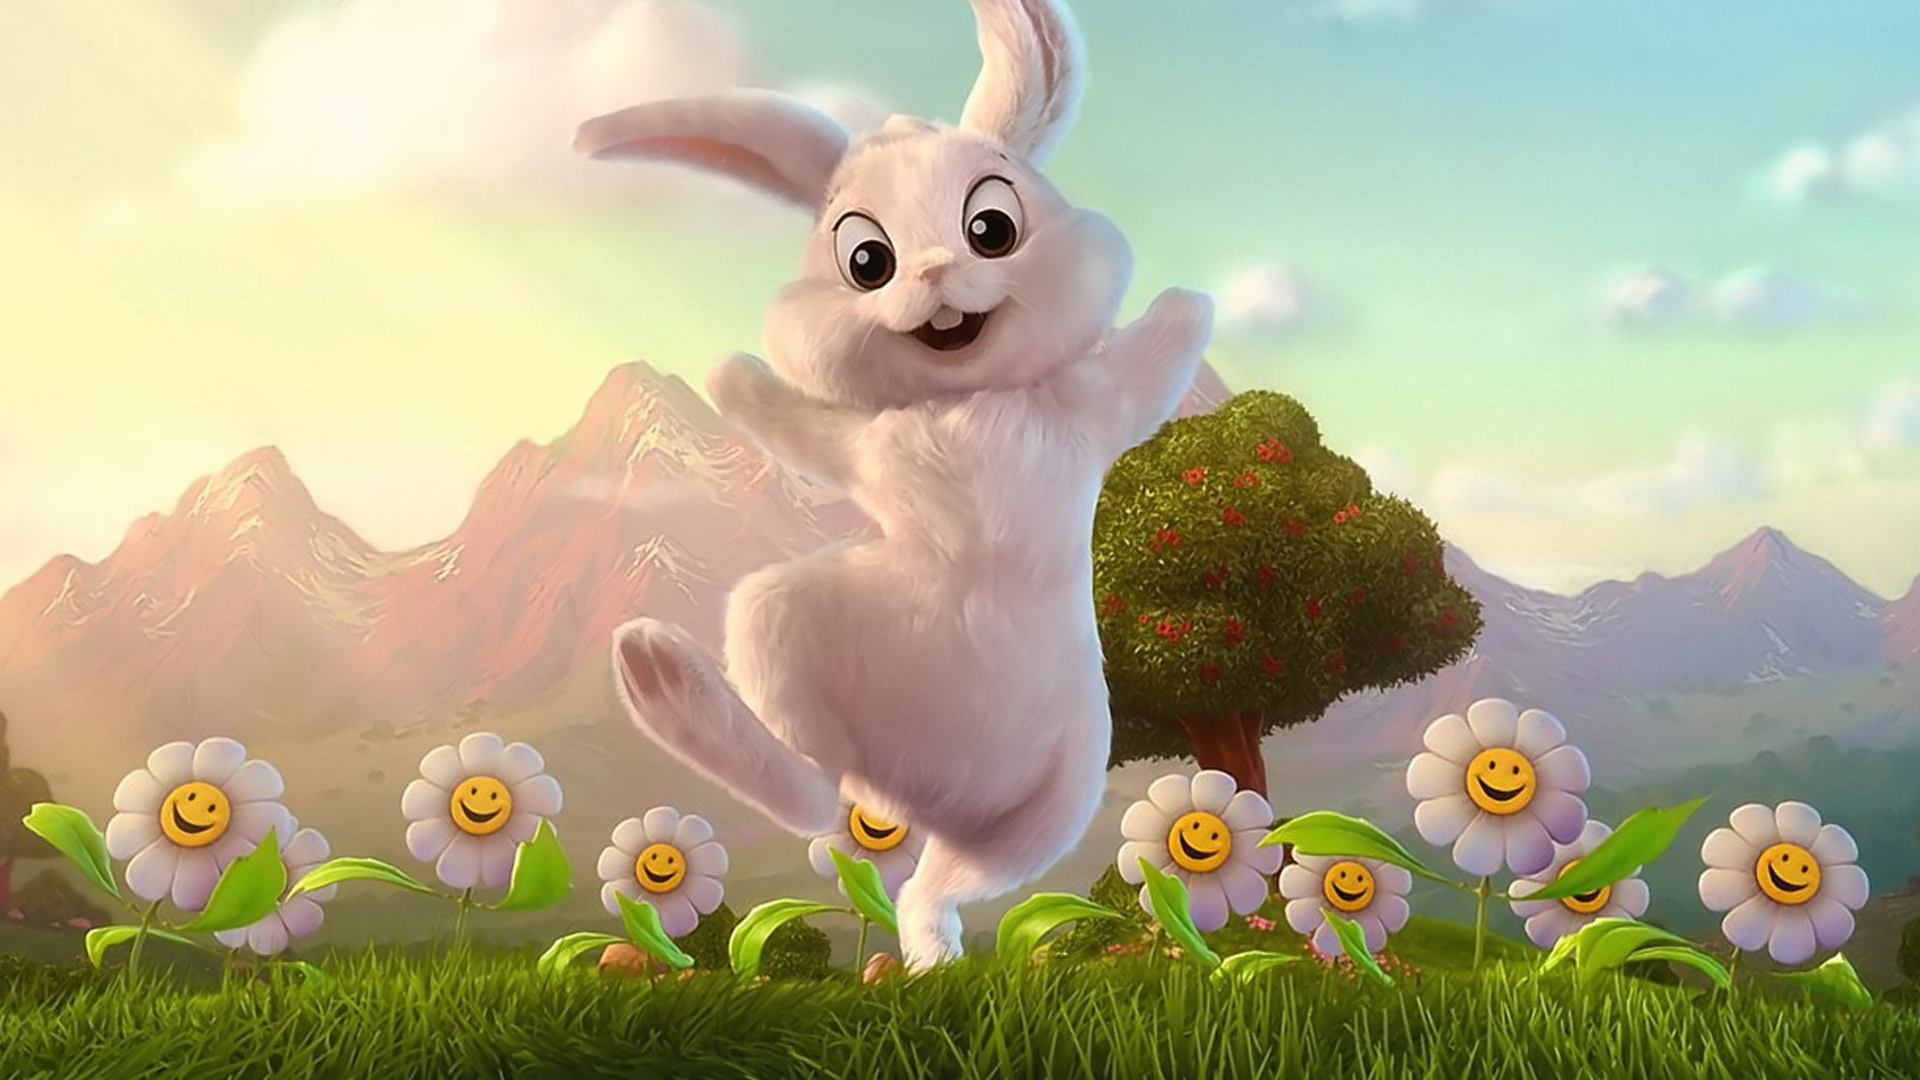 Free Download Easter Bunny Wallpaper 1041 1920x1200 For Your